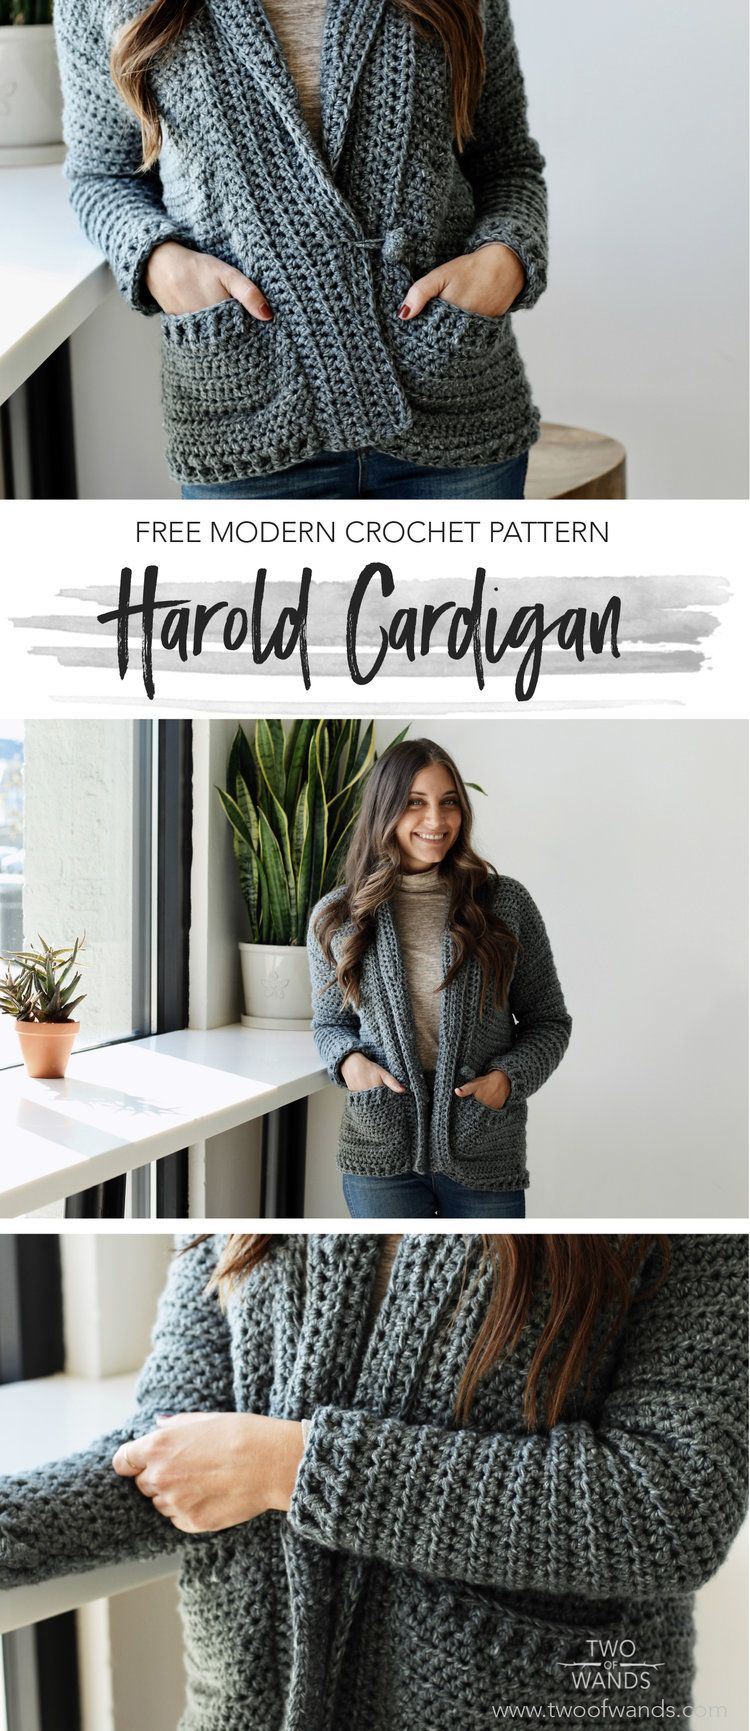 9b0b4d779 Harold Cardigan pattern by Two of Wands. The classic shawl collar is the  perfect compliment to this boxy silhouette and the toggle button adds even  more ...